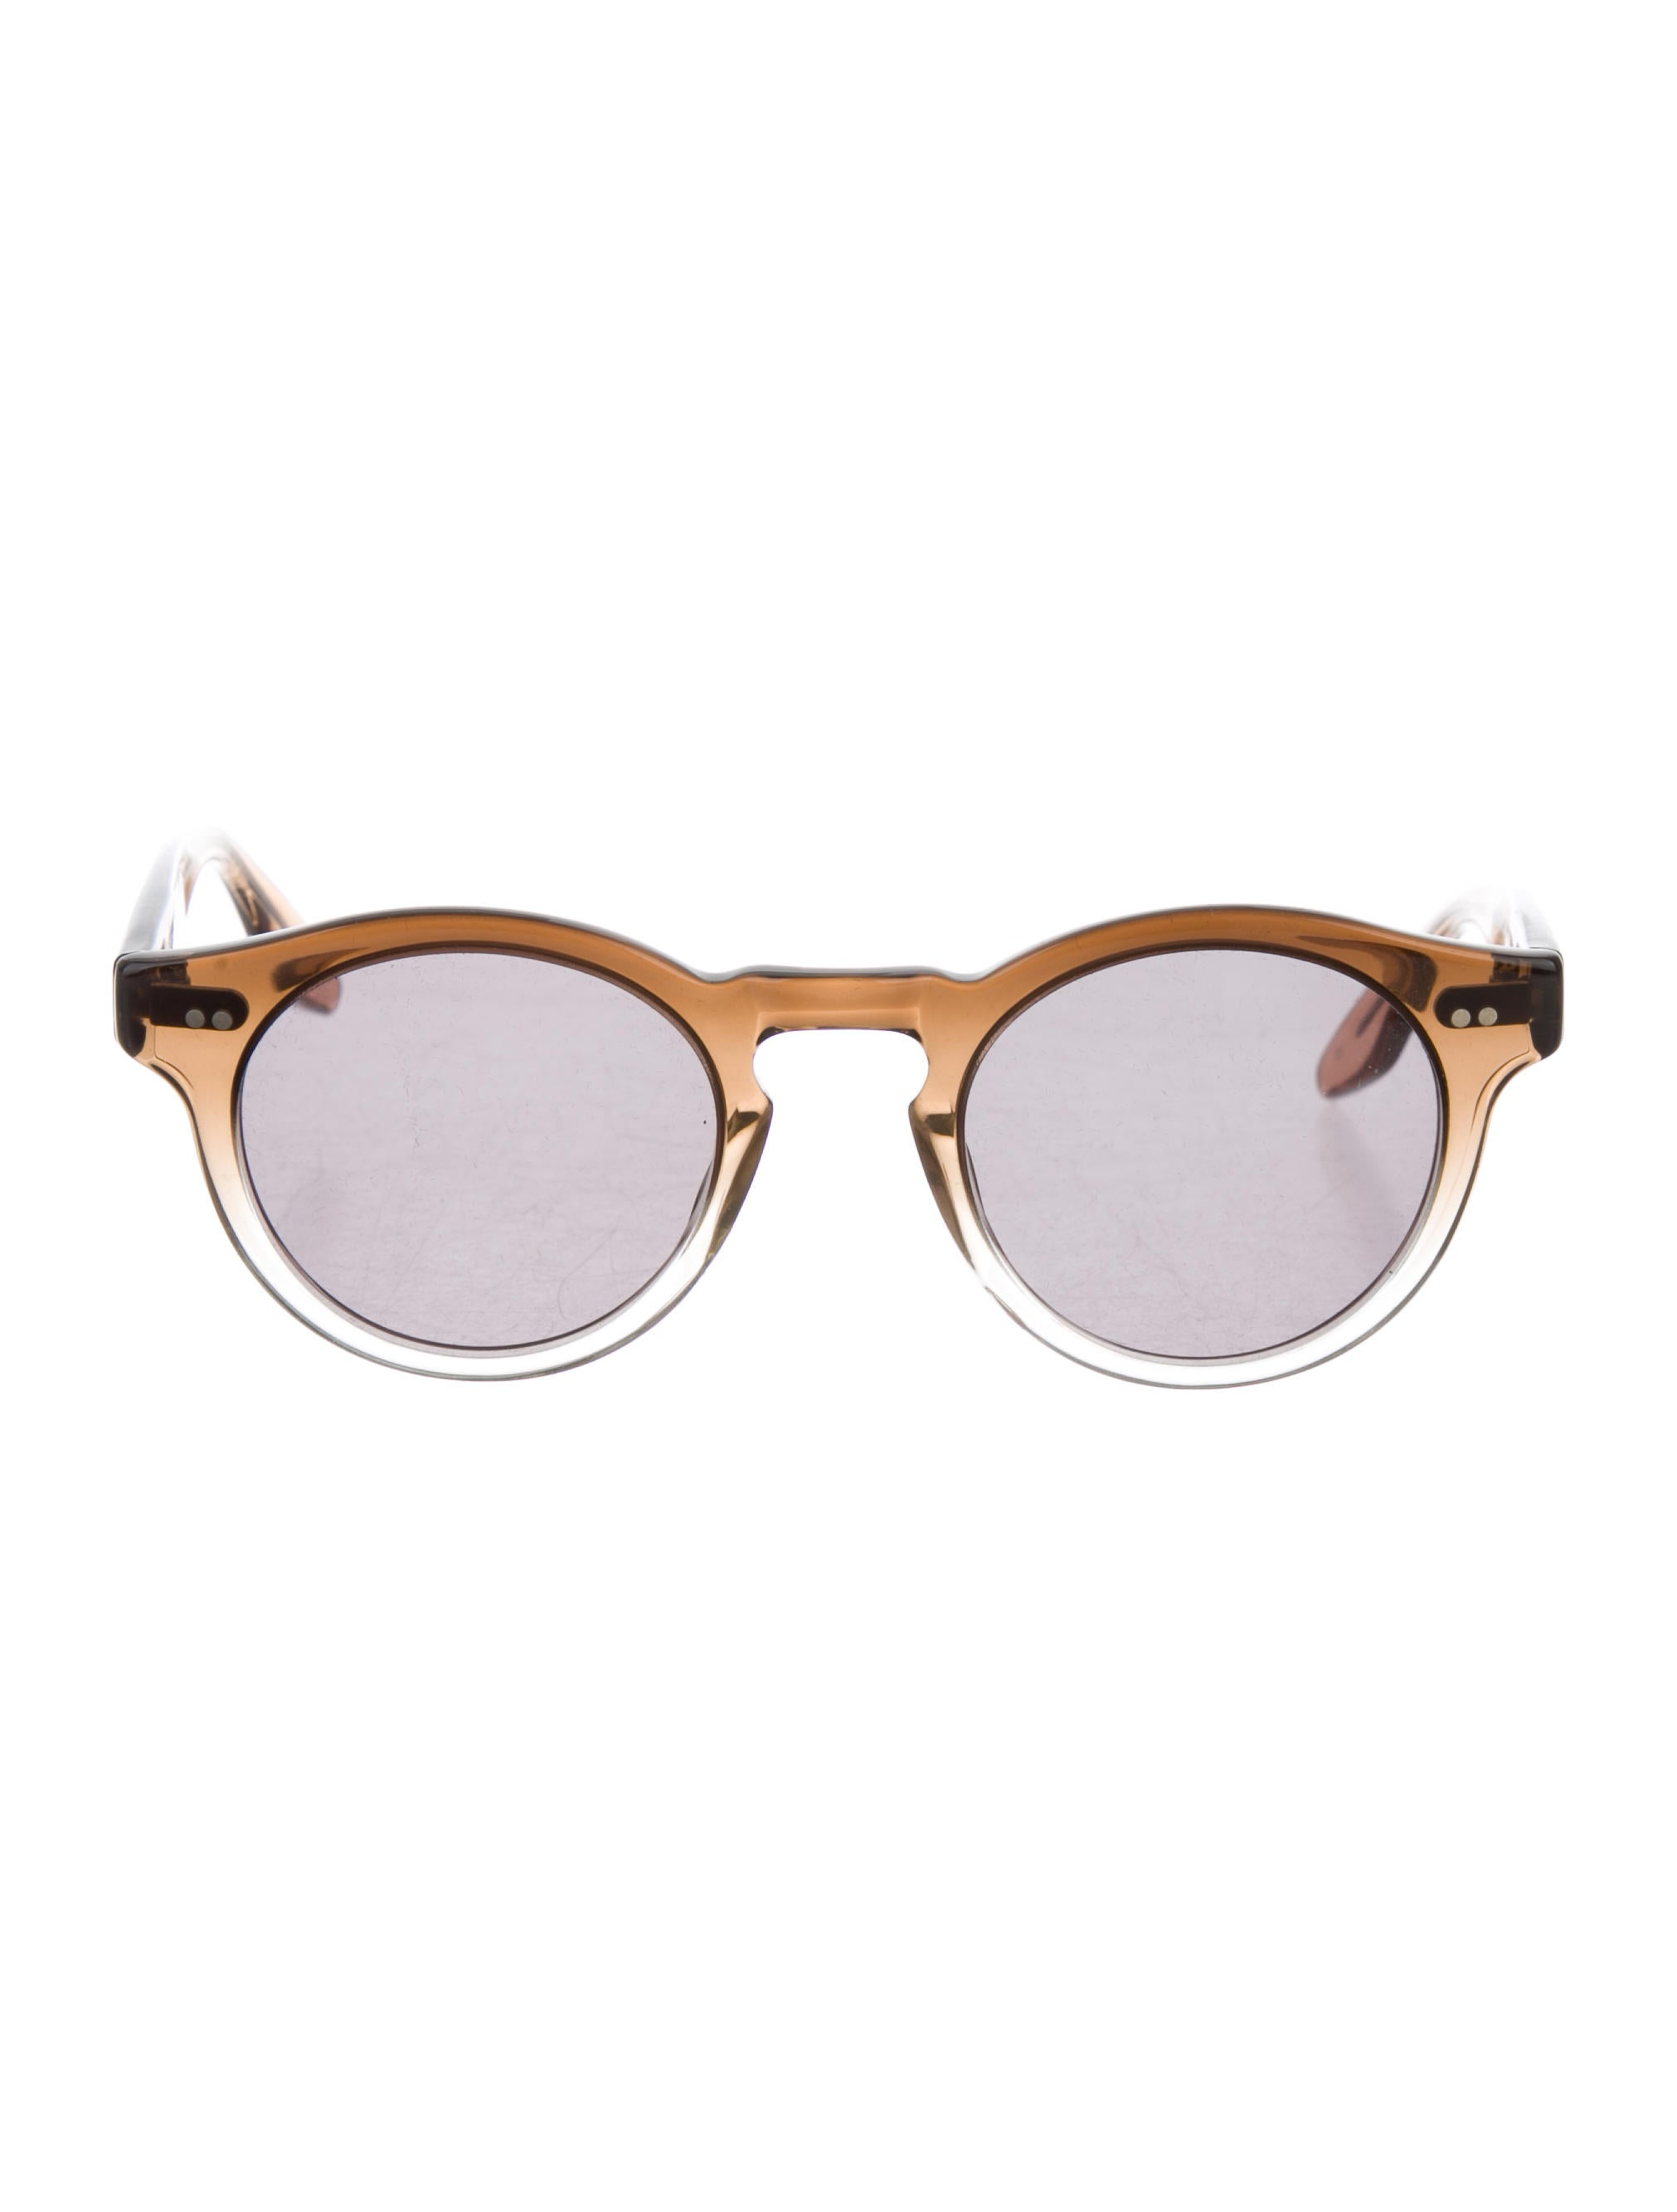 7a81aca39f3 Chloe Sevigny for Opening Ceremony Round Gradient Sunglasses ...